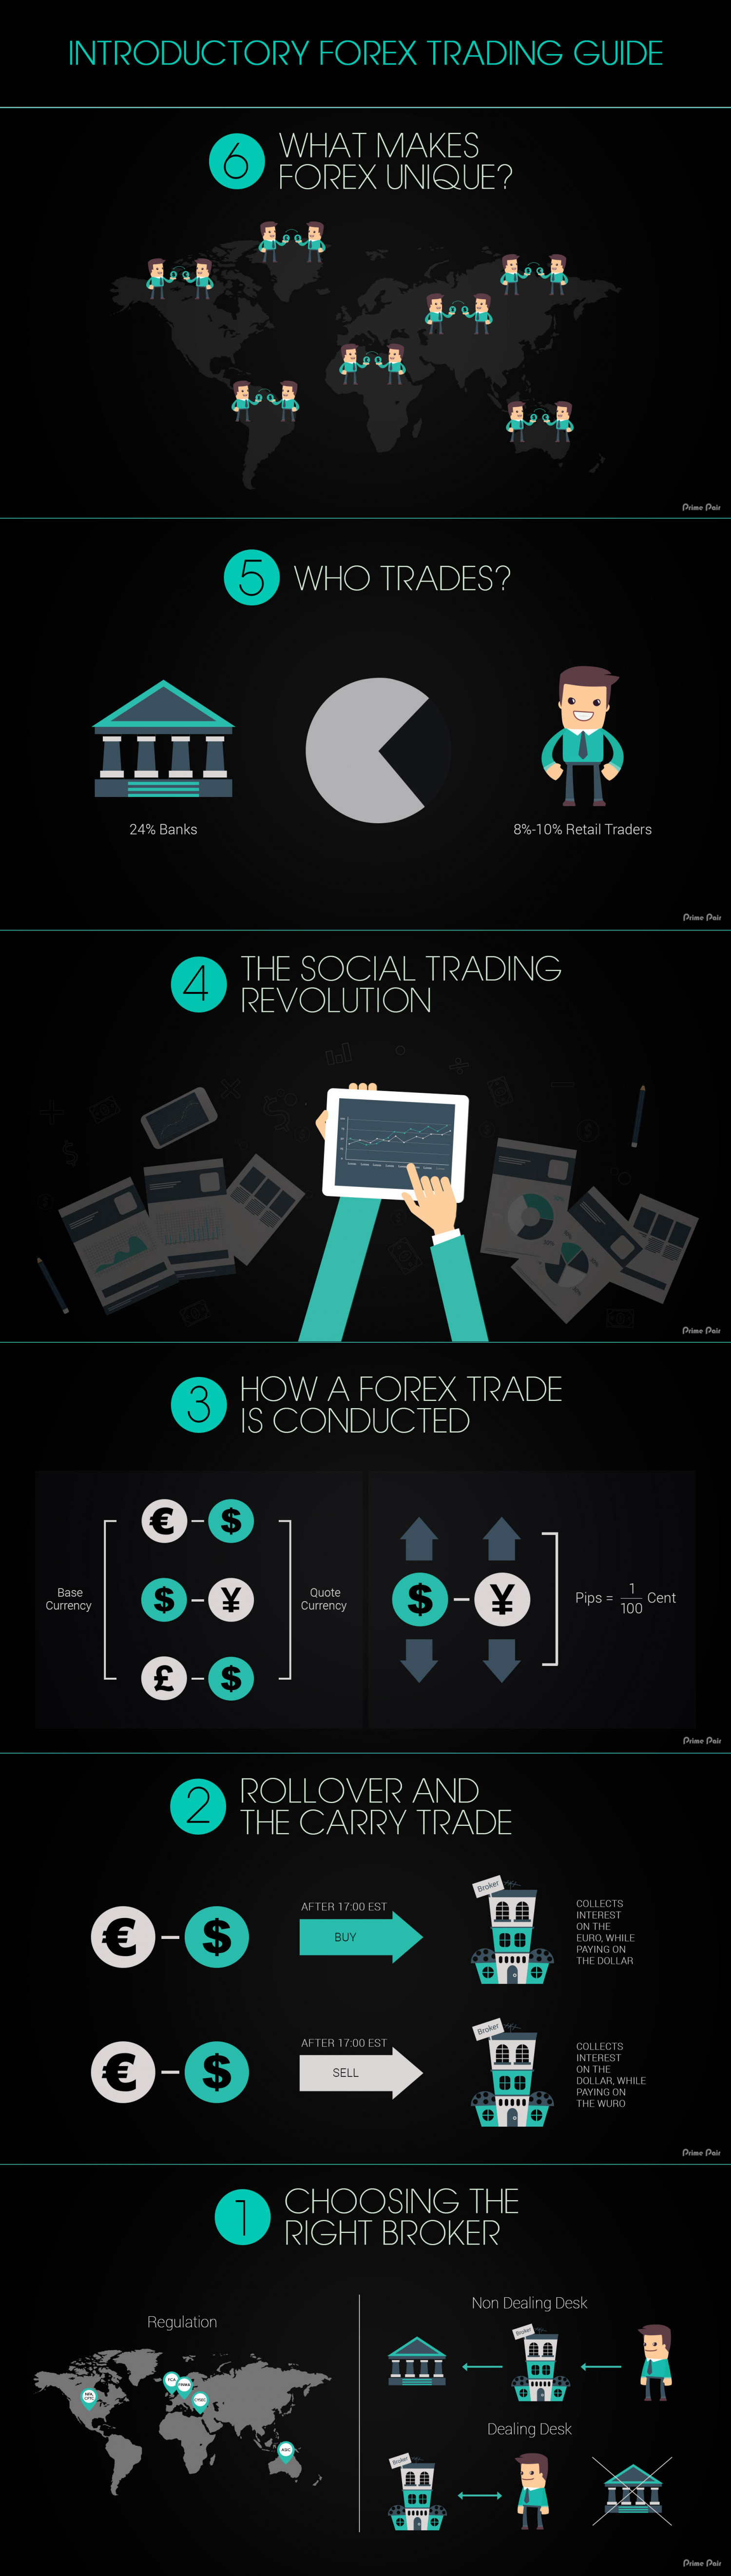 Introductory Forex Trading Guide Infographic